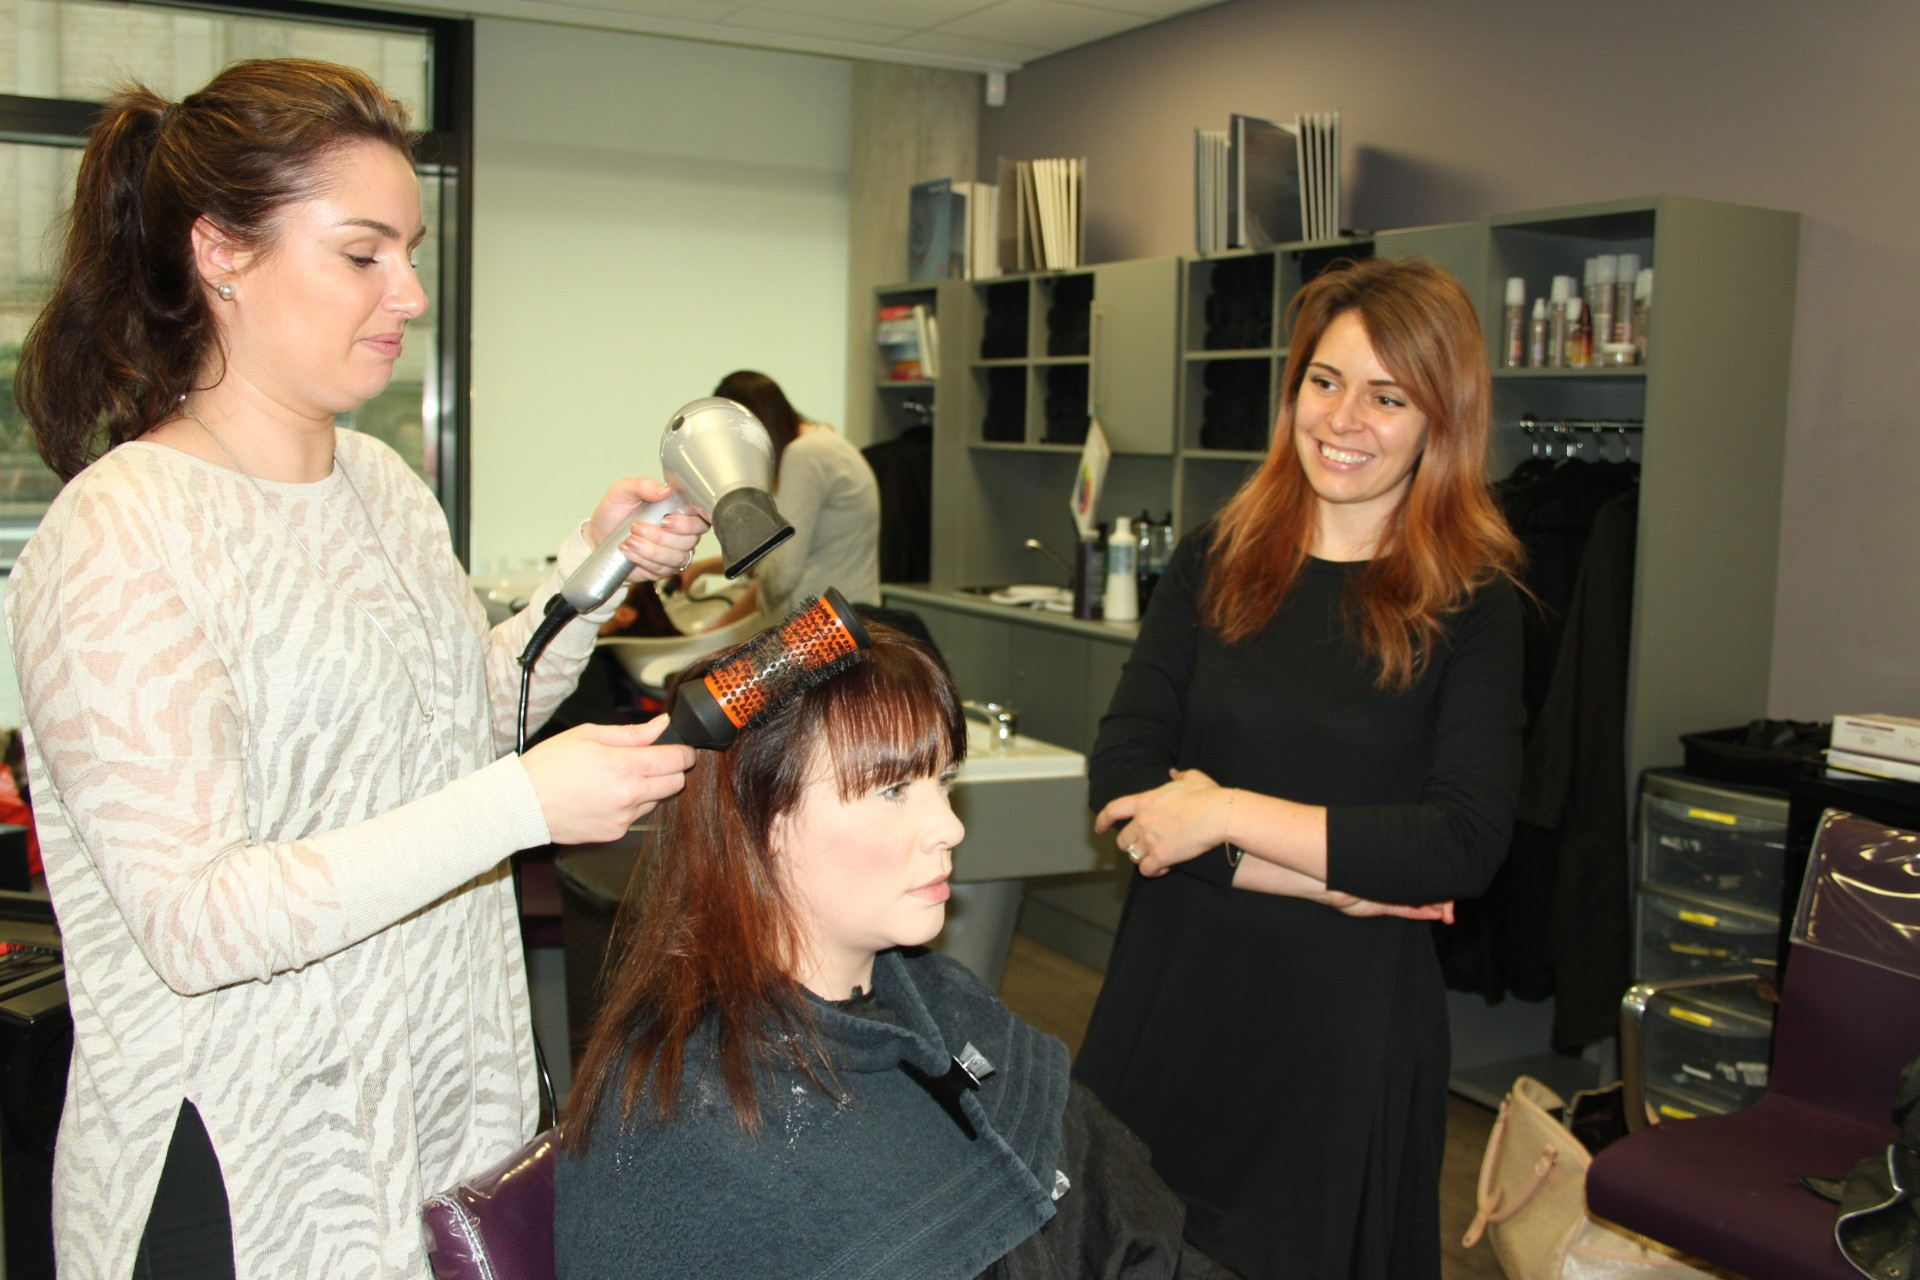 Chelsea Larkin of Precious Hair and Beauty Lounge styles her business partner and Natalie Dewhirst's hair, watched by Amy Sontae of Wella.